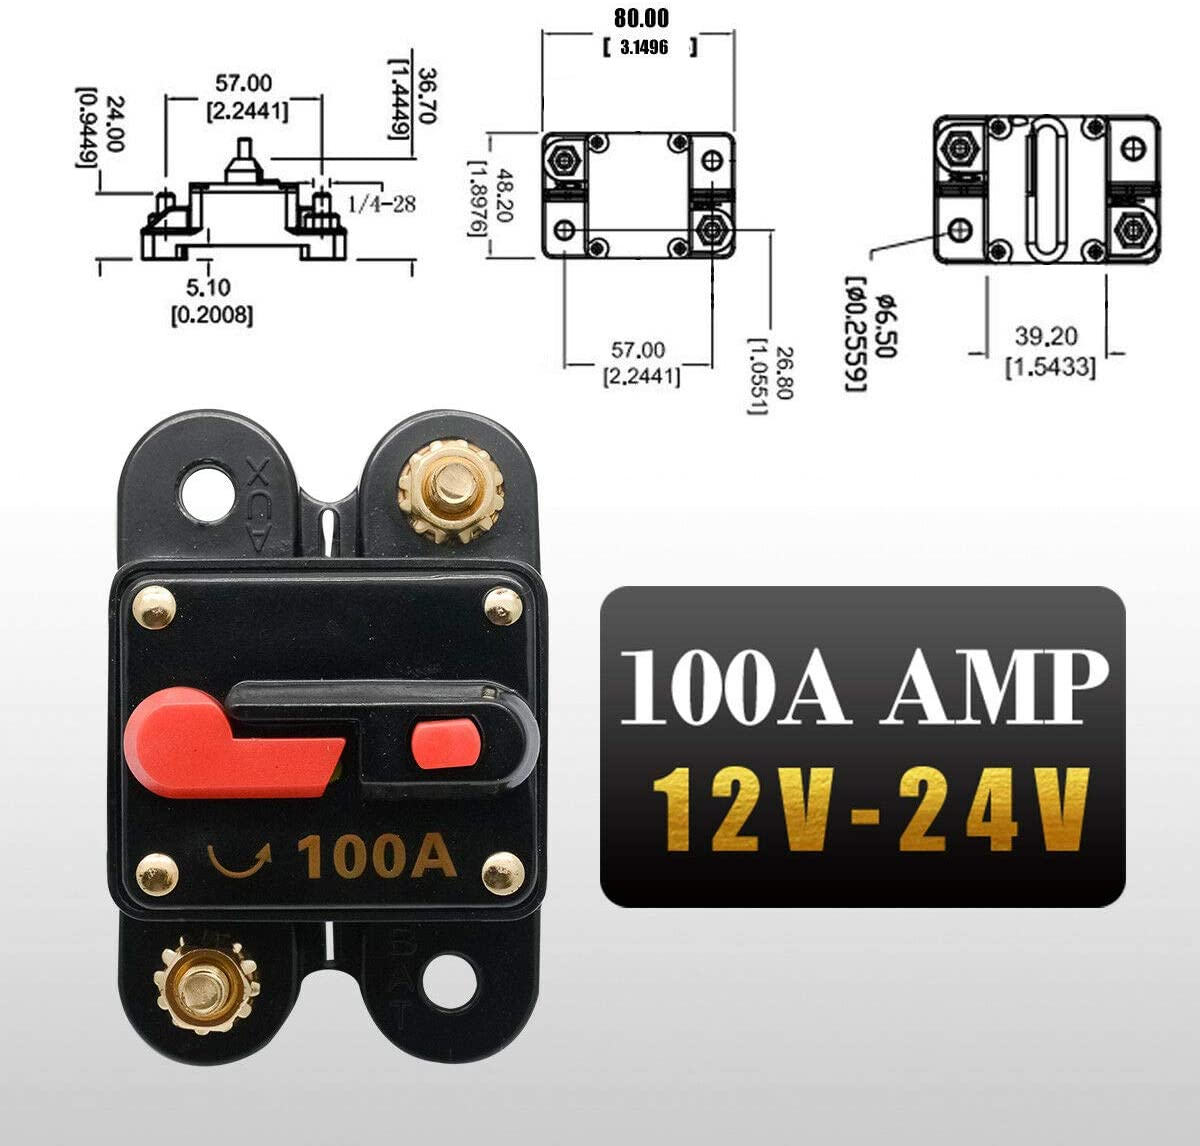 70 Amp Circuit Breaker with Manual Reset HugeAuto 12V-24V DC Car Audio Inline Circuit Breaker Fuse Block for Auto Motor Car Marine Boat Audio Solar Inverter System Protection